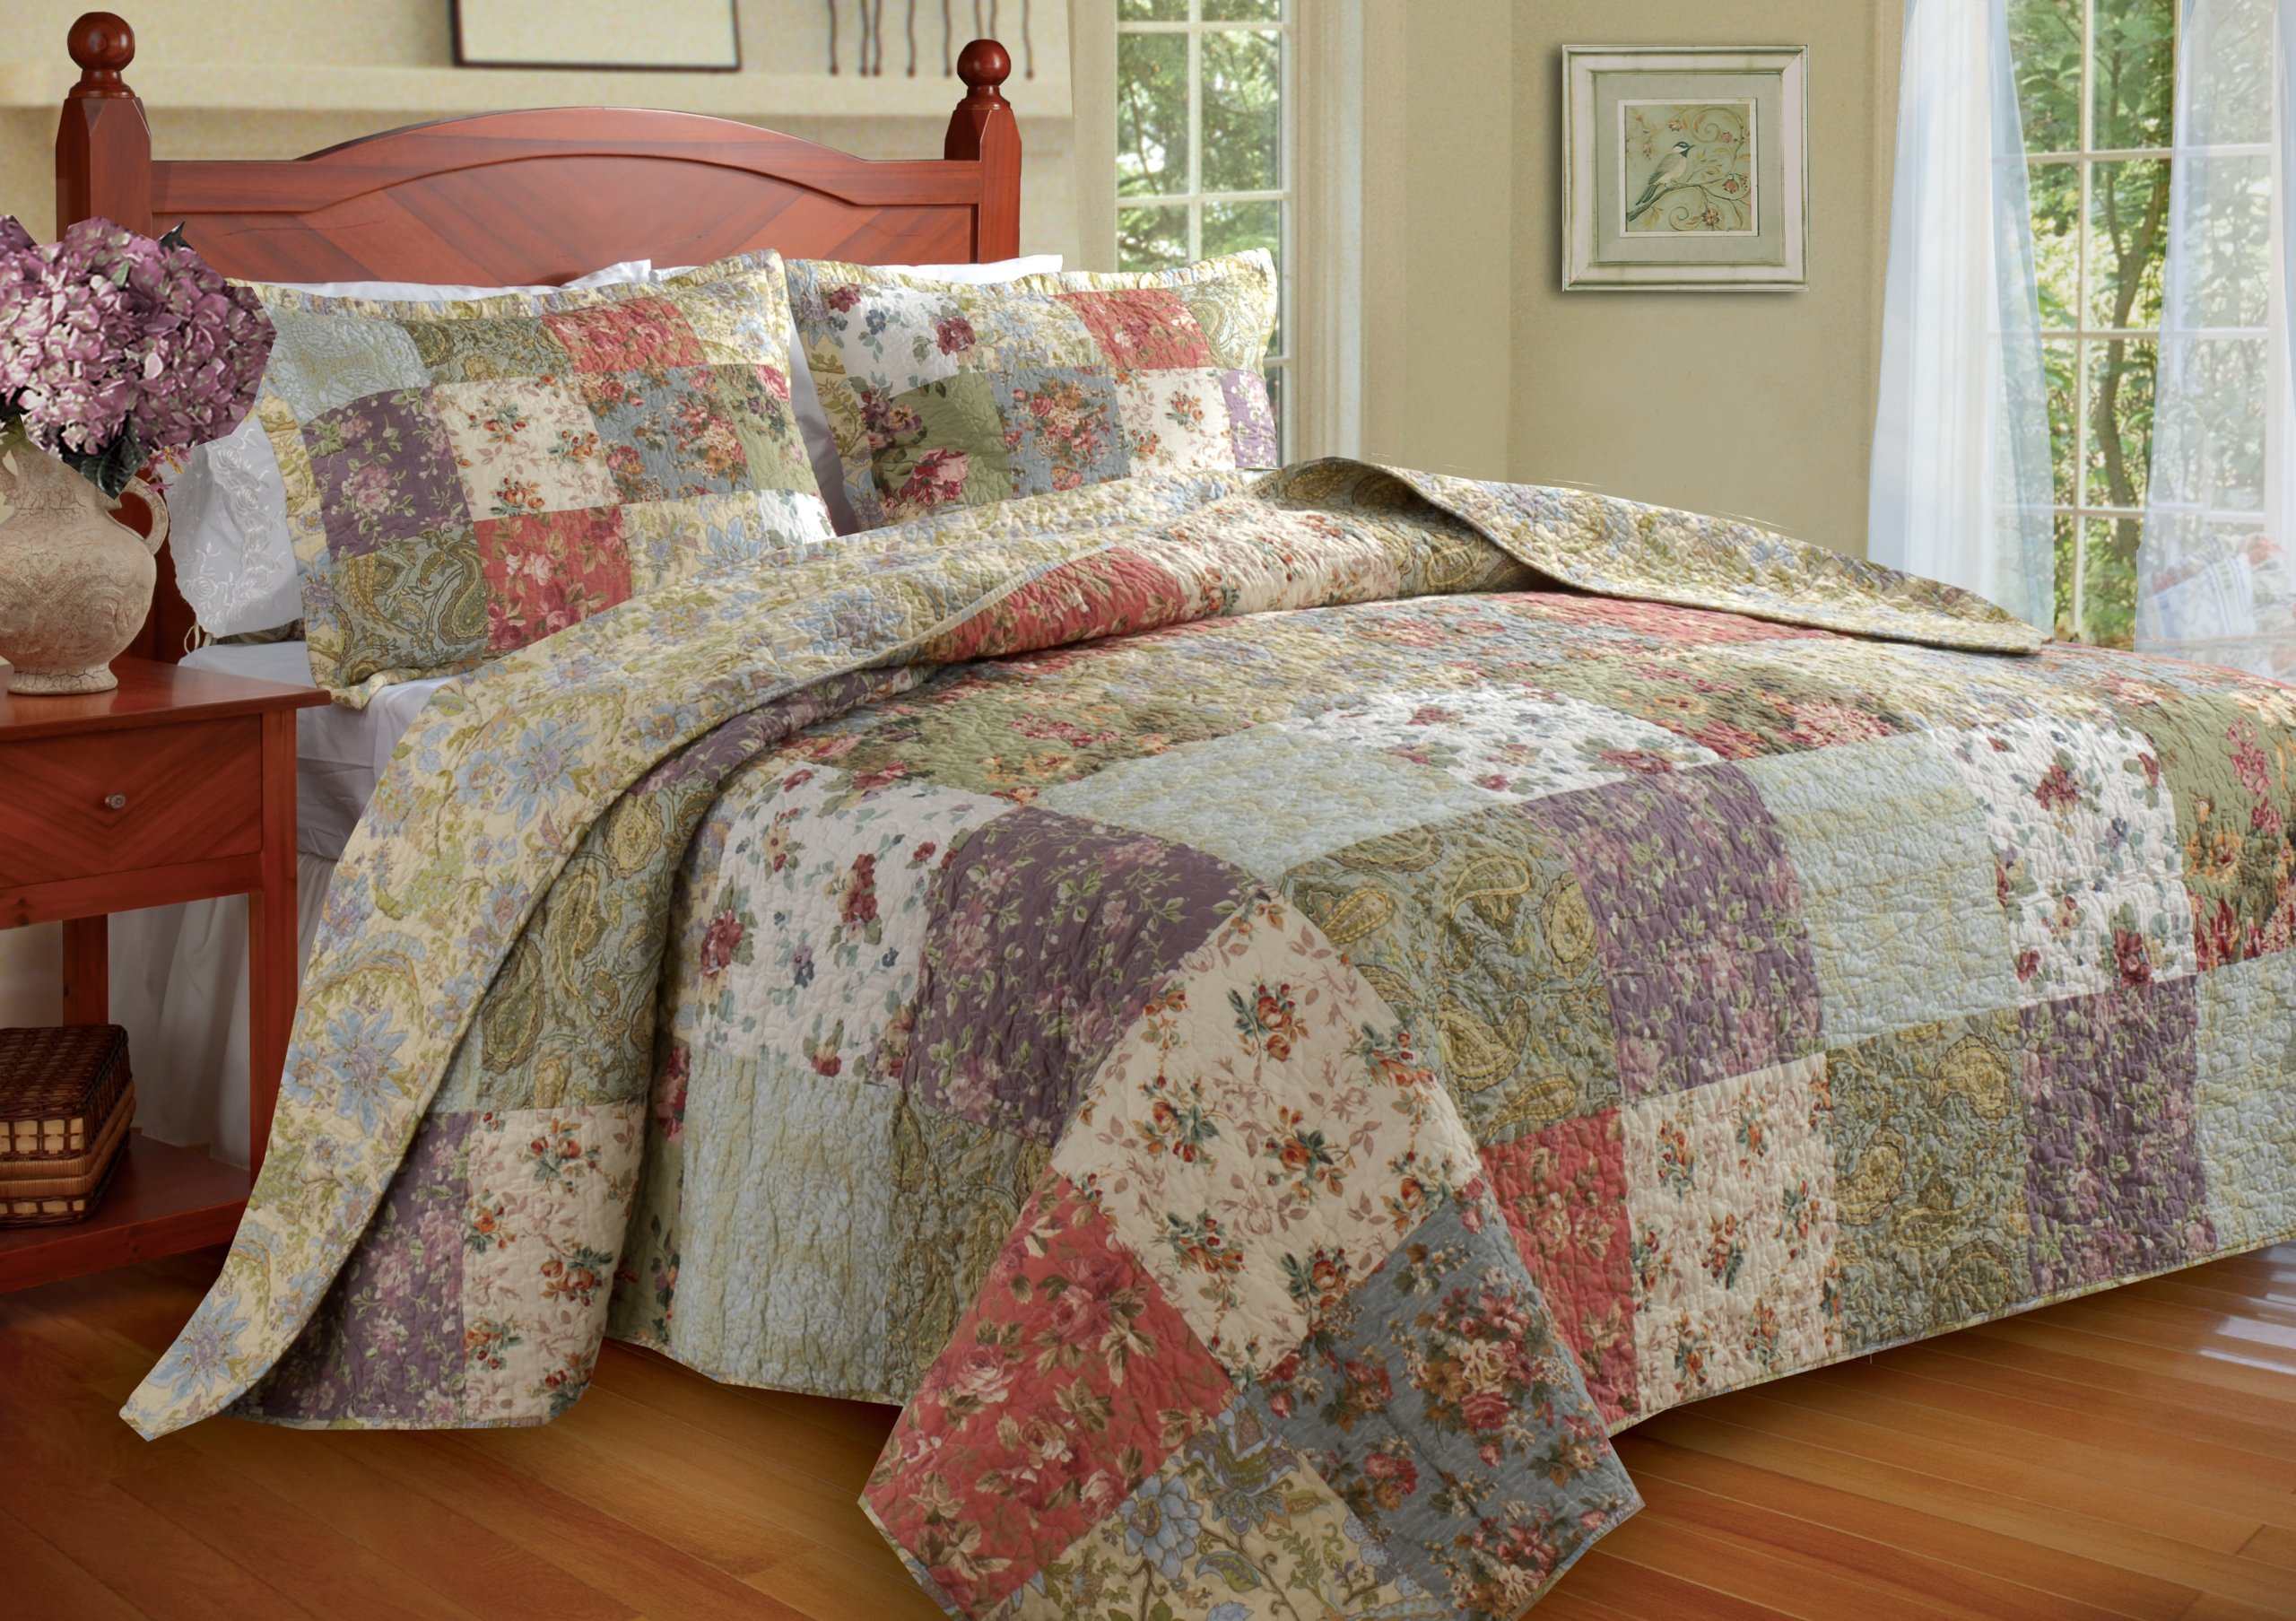 Greenland Home Blooming Prairie Queen 3-Piece Bedspread Set by Greenland Home